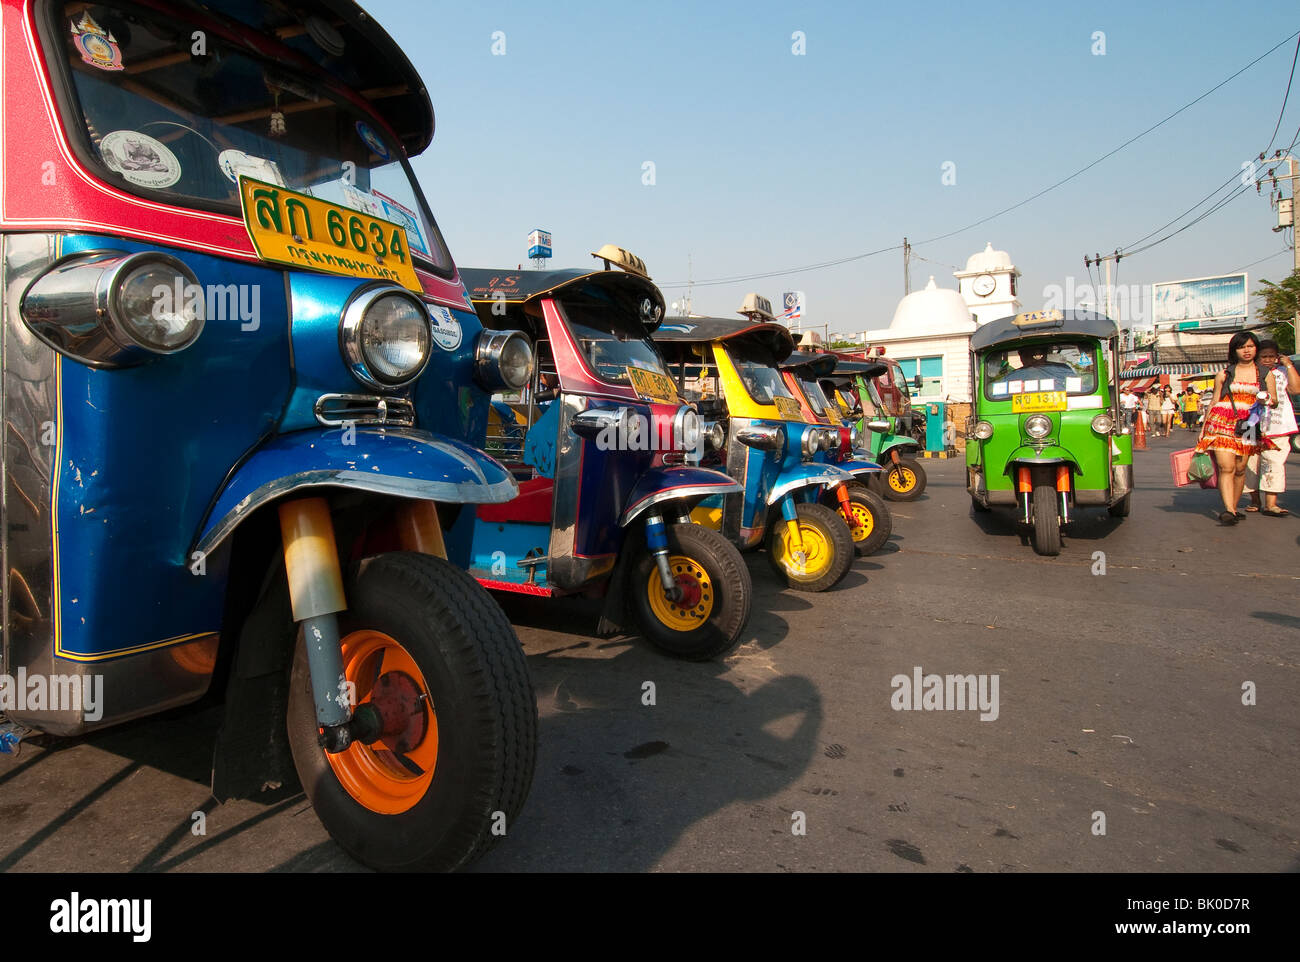 Tuk-tuks at Chatuchak Weekend Market in Bangkok, Thailand. - Stock Image